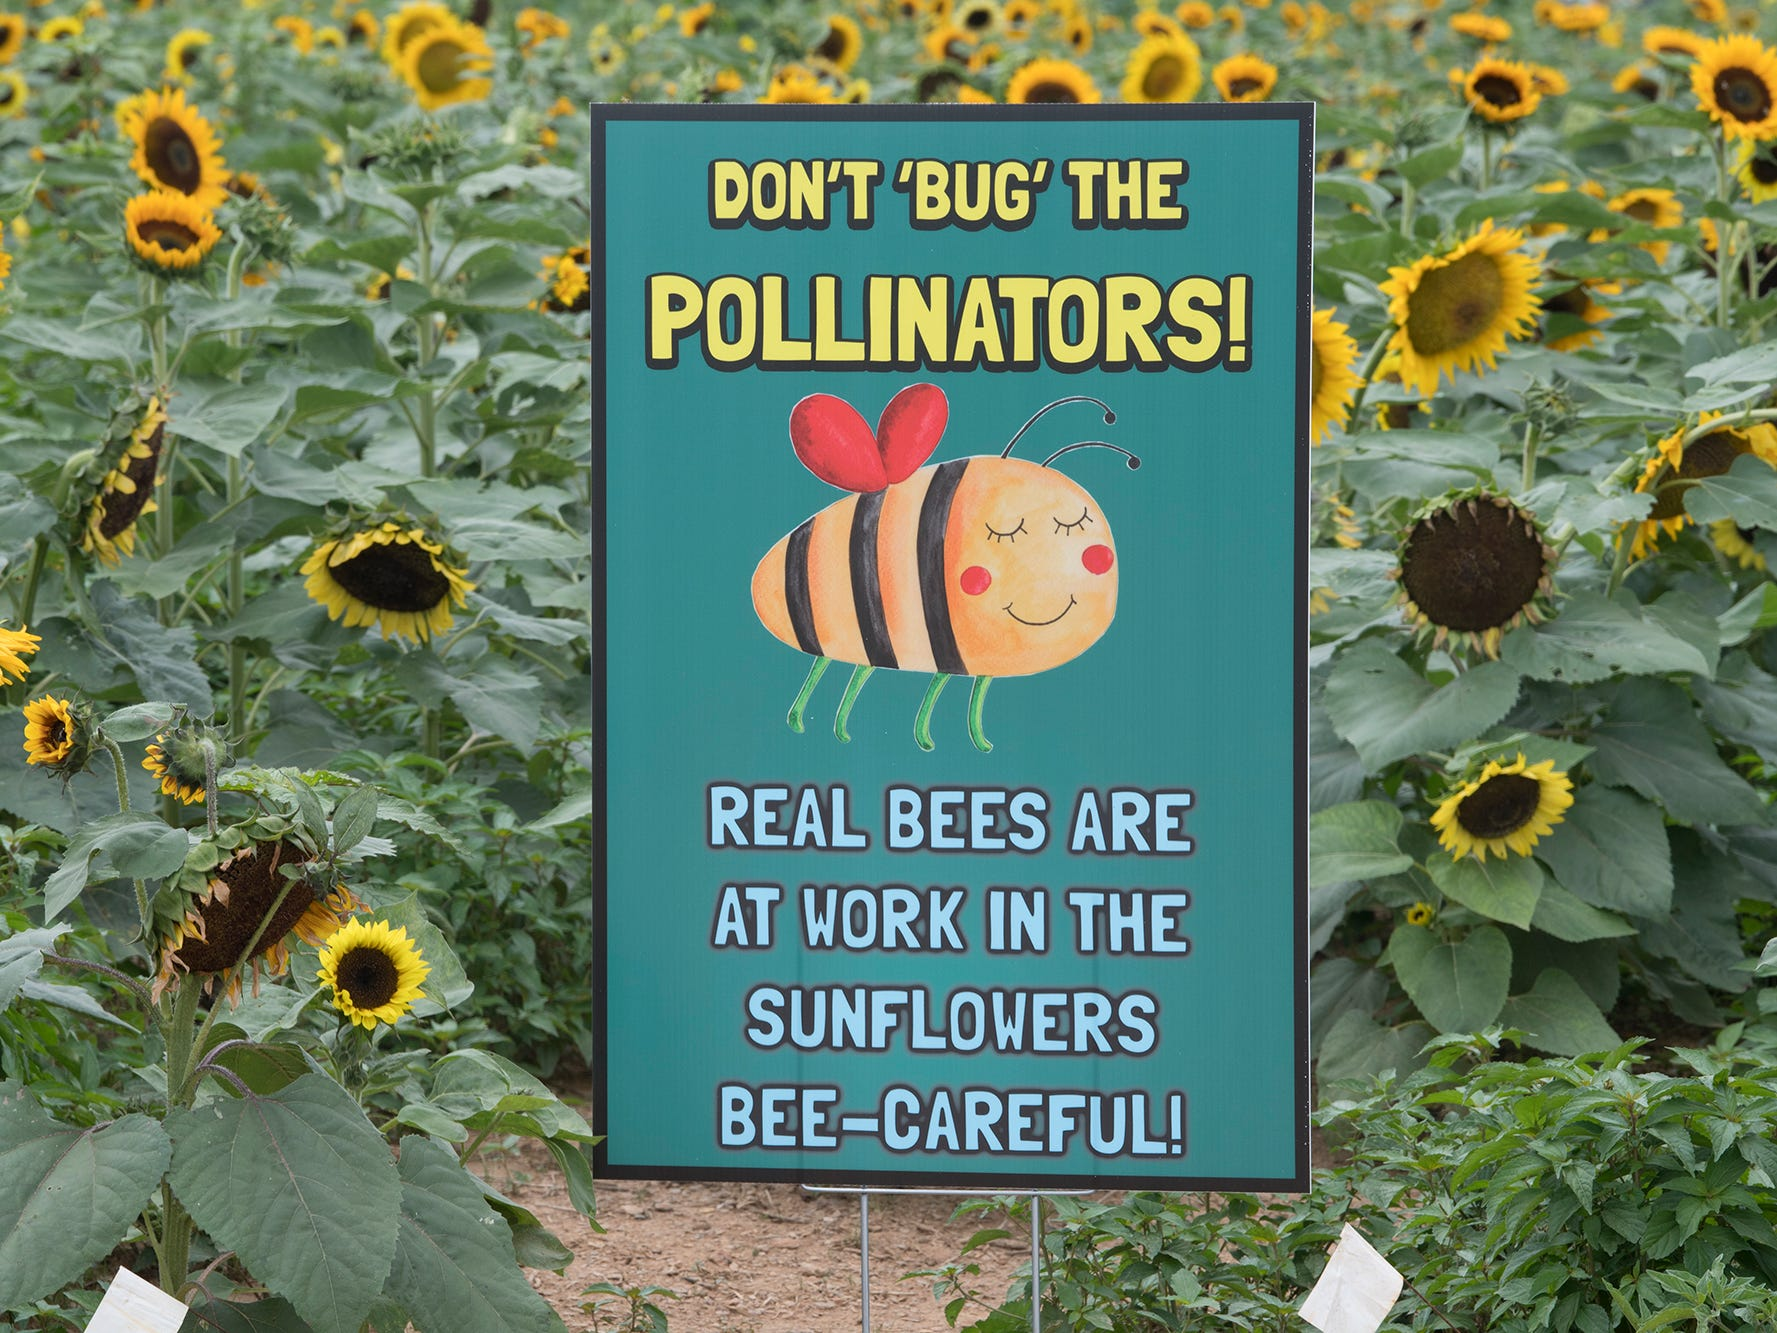 A sign warns people about pollinators working in the sunflowers during the 2nd Annual Sunflower Festival at Maple Lawn Farms near New Park.